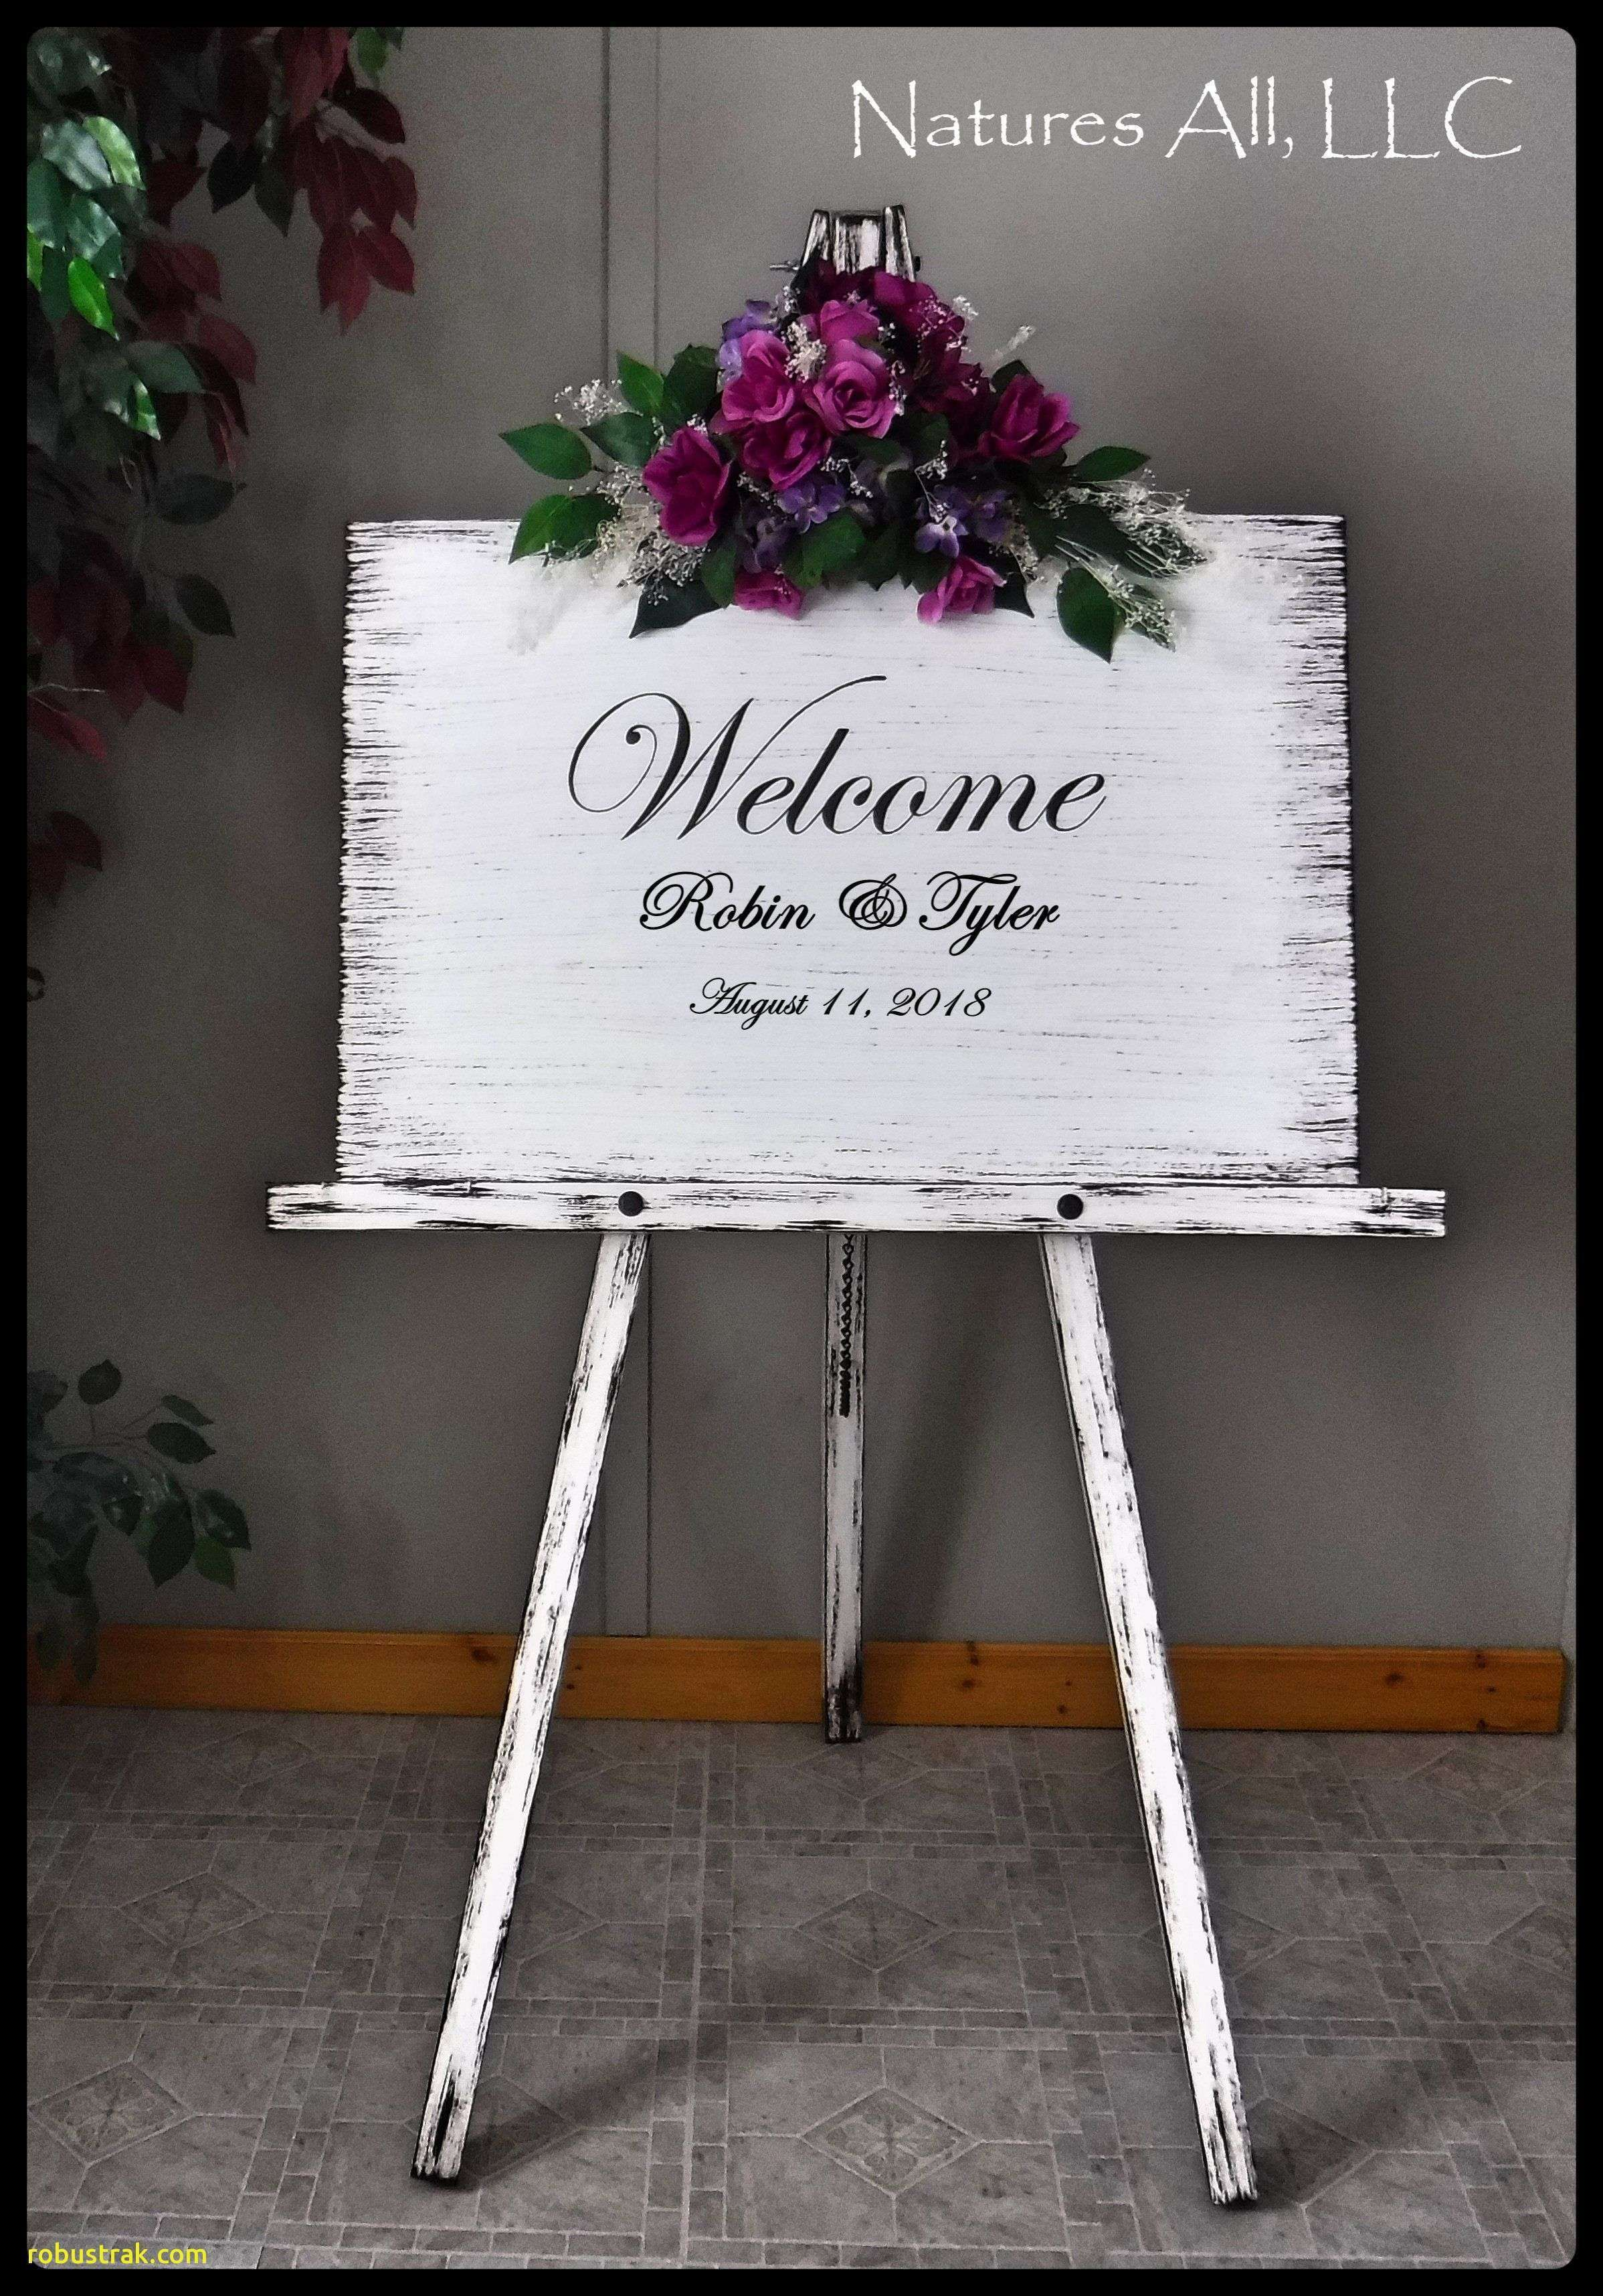 Decorative Easels For Weddings.Pin By Home Renovation On Home Renovation Wedding Signs